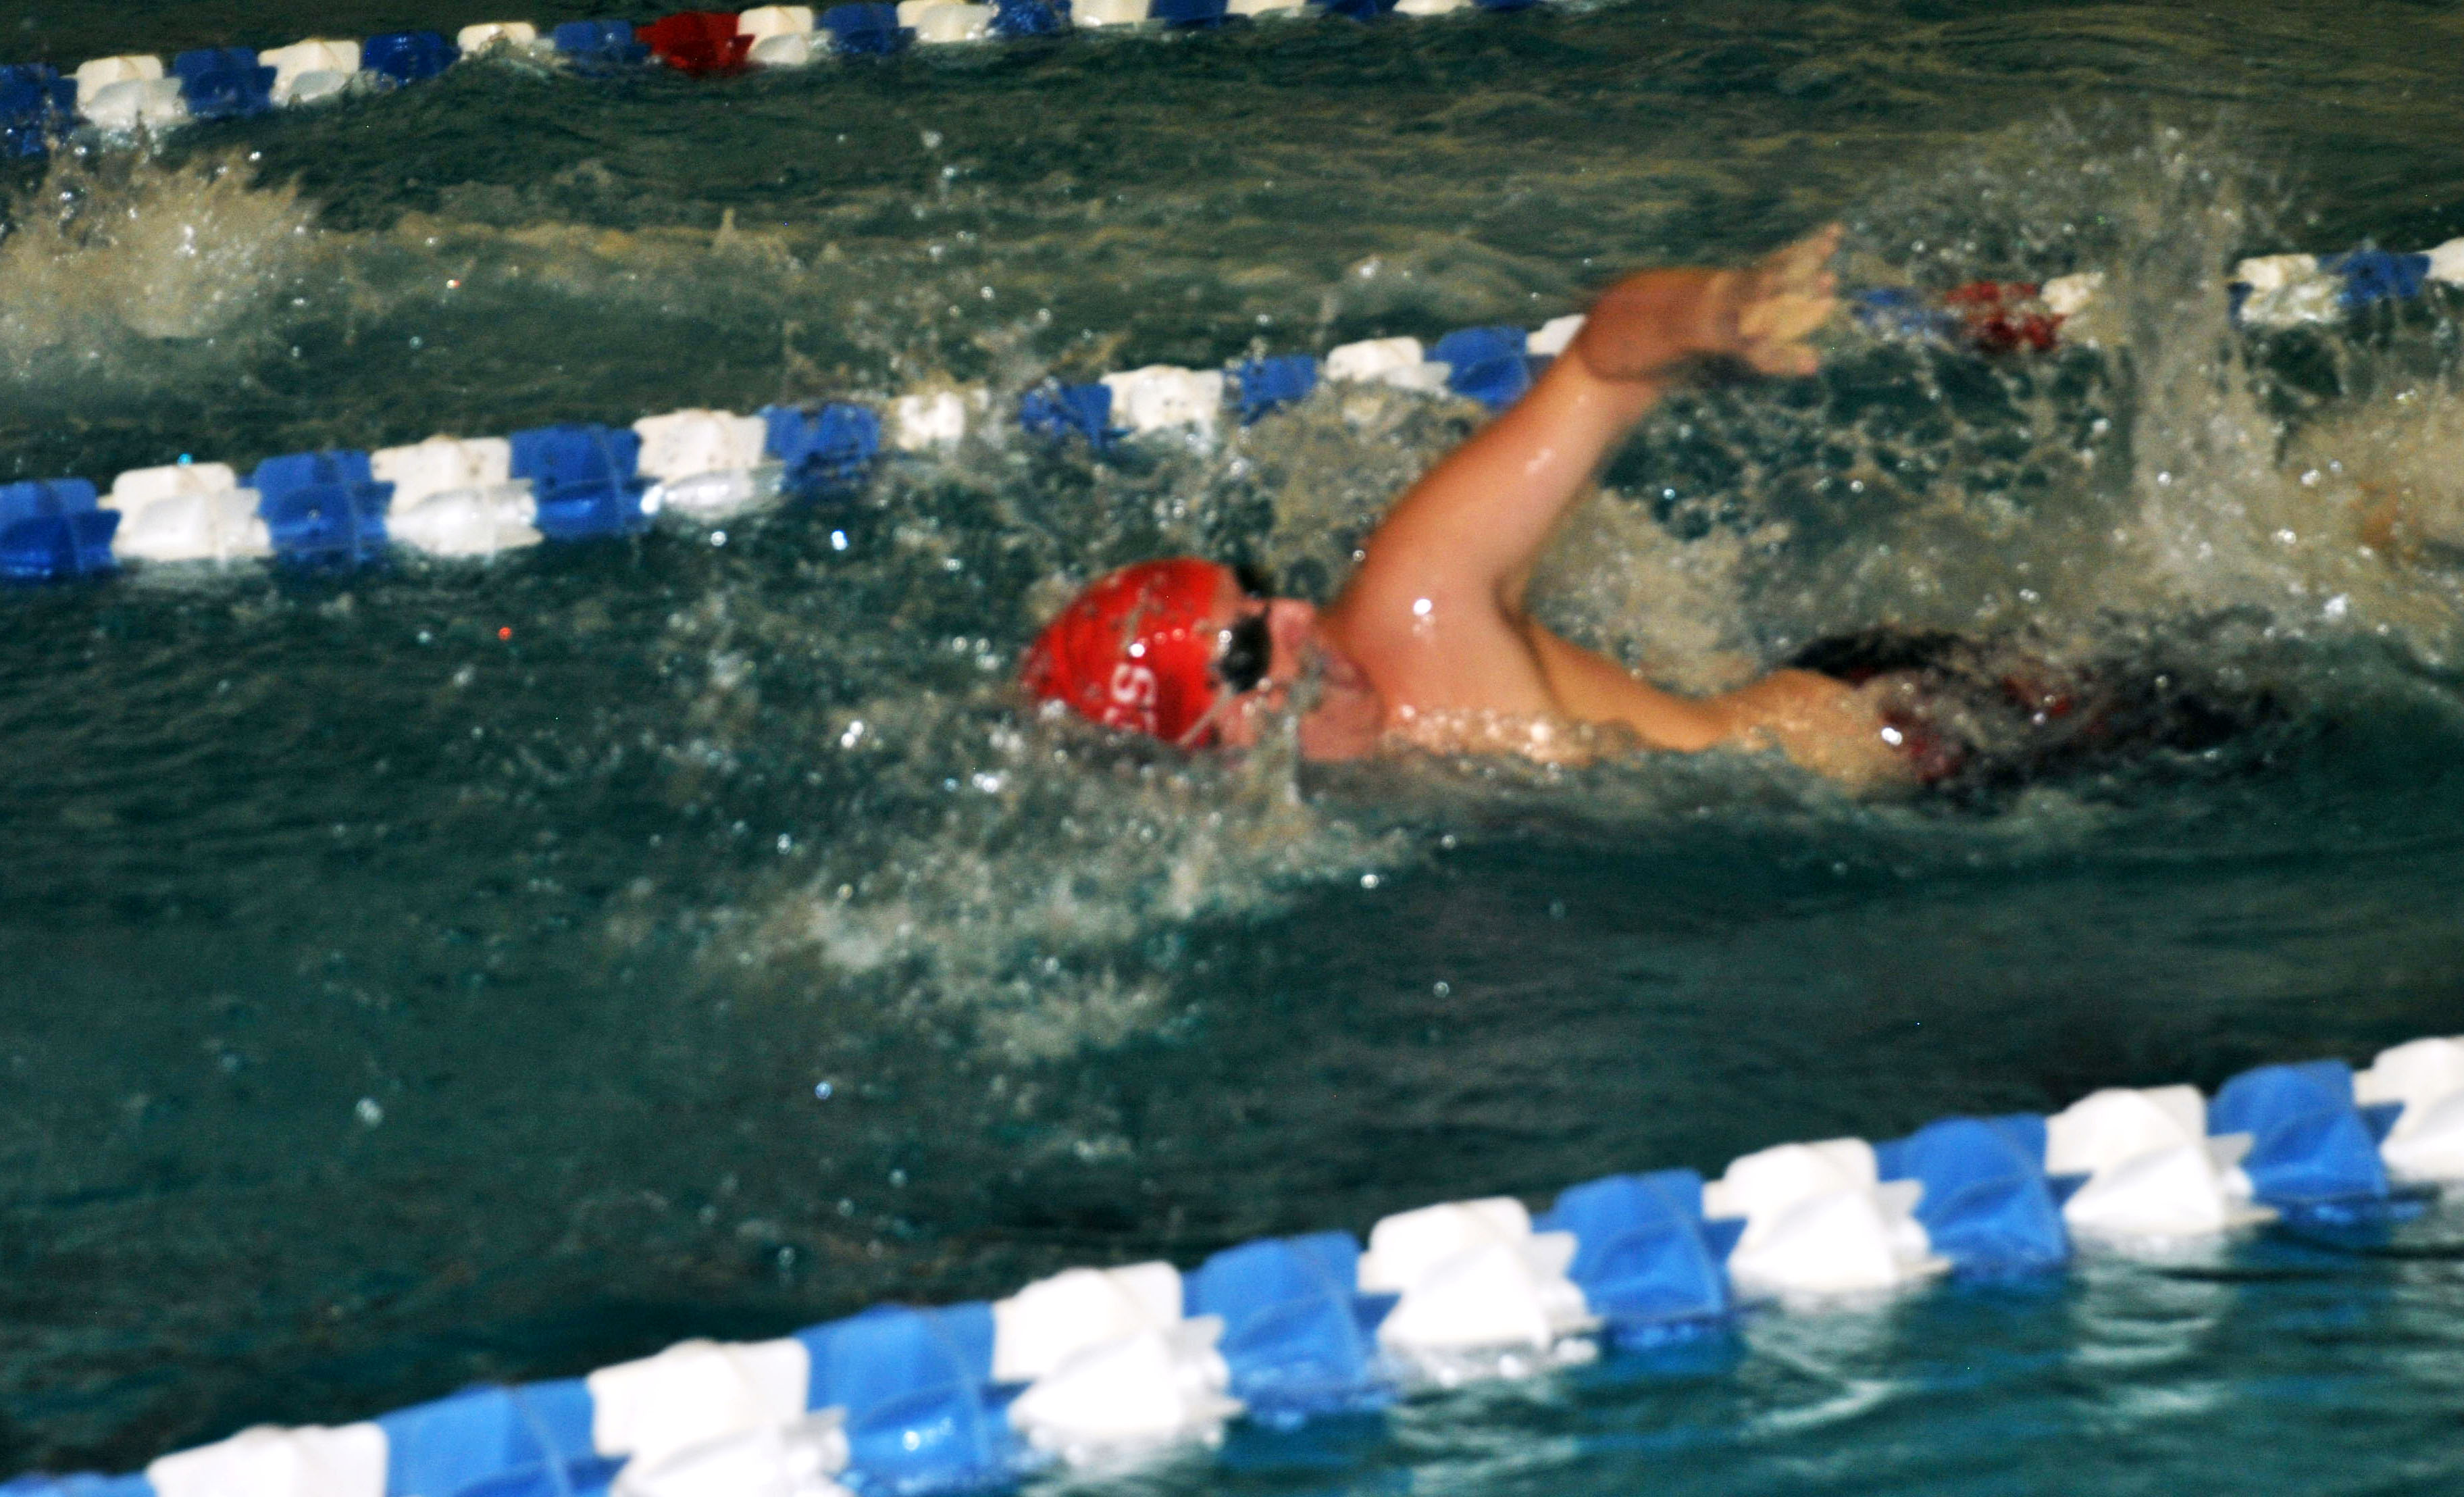 200 free relay team qualifies for state, other swimmers striding